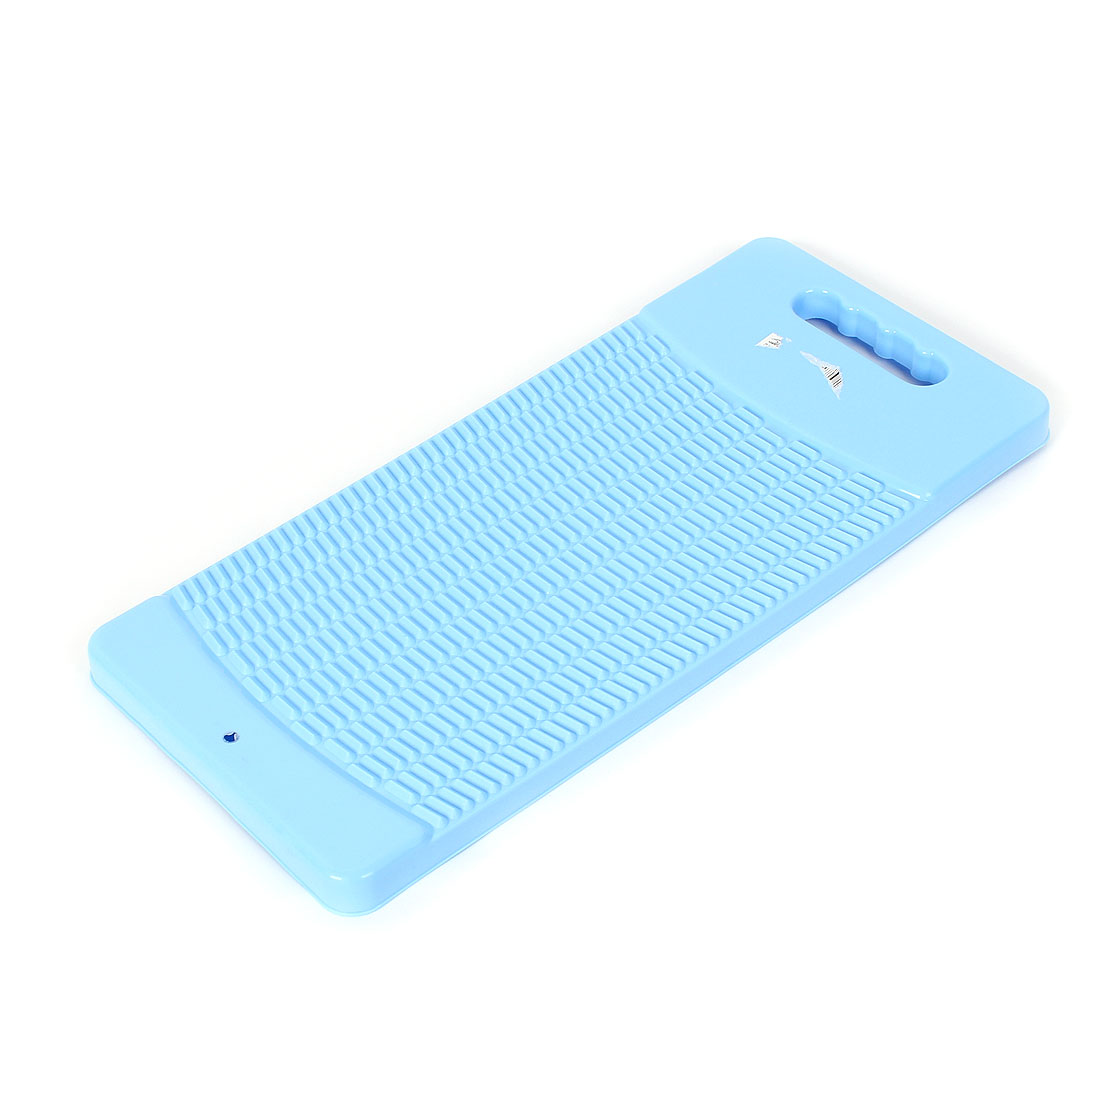 Plastic Rectangle Shaped Washing Clothes Laundry Board Washboard Light Blue 43cm Long